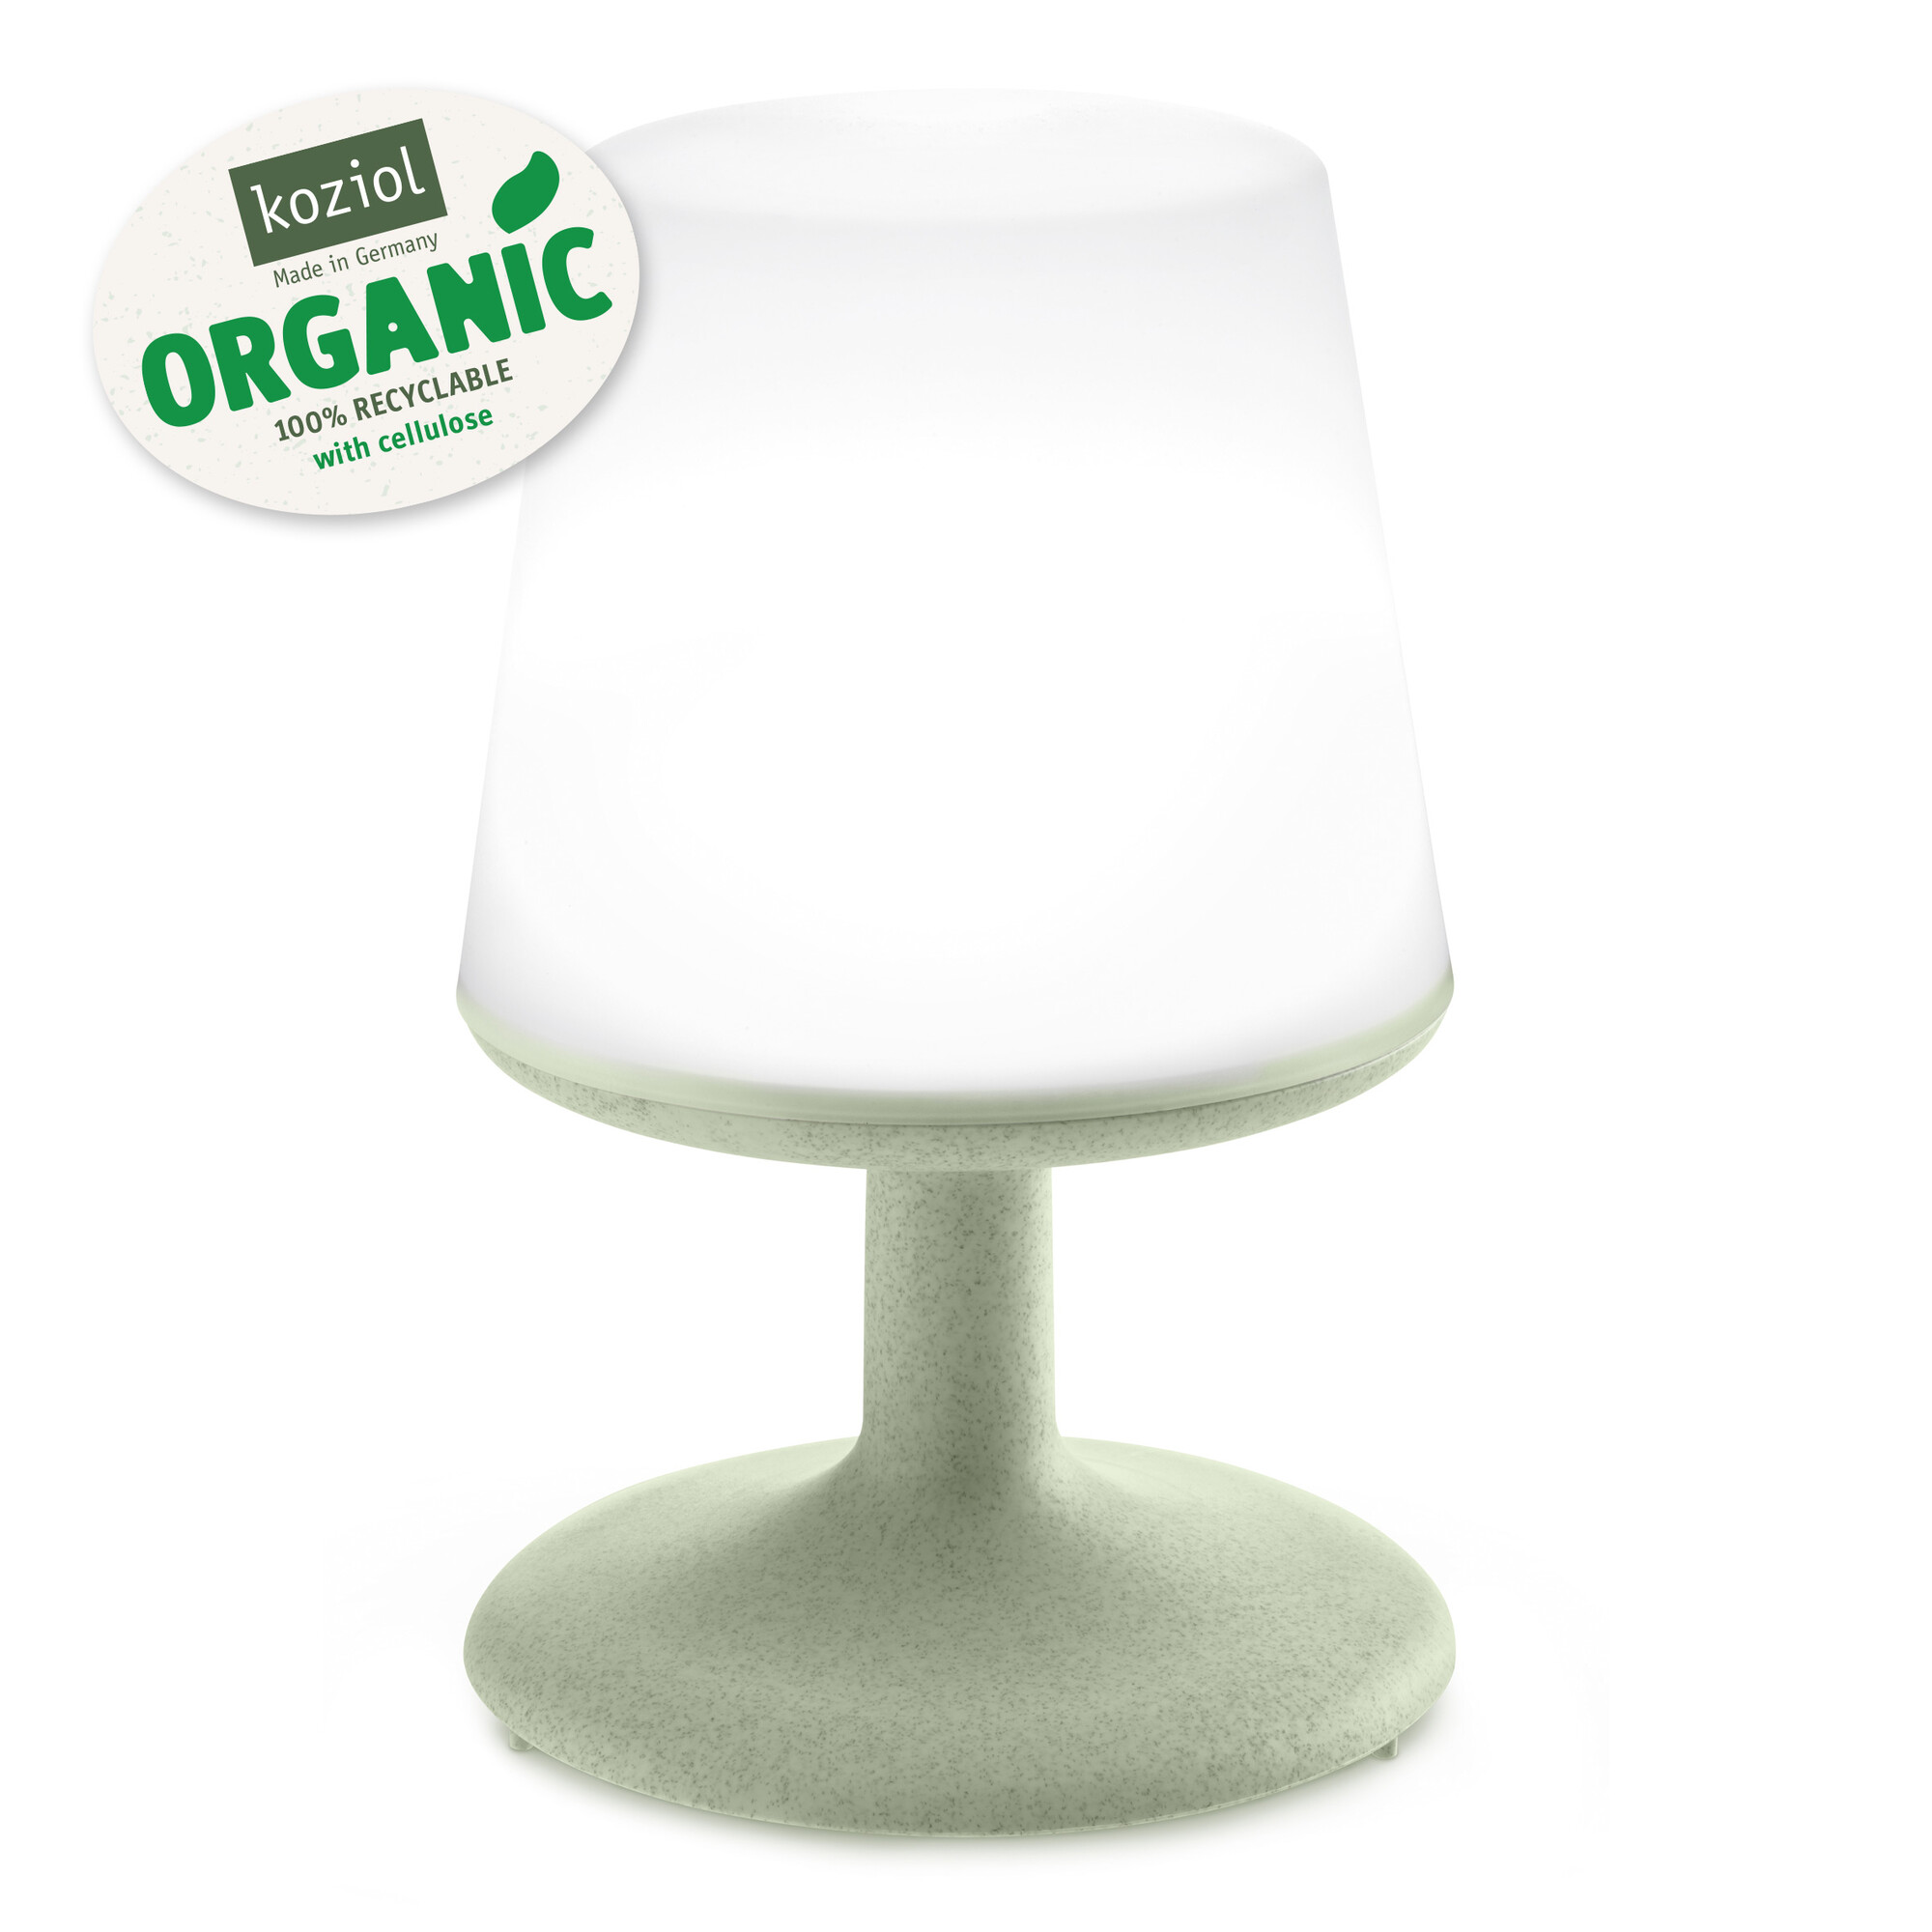 Koziol Light to Go Organic green oplaadbare lamp met powerbank